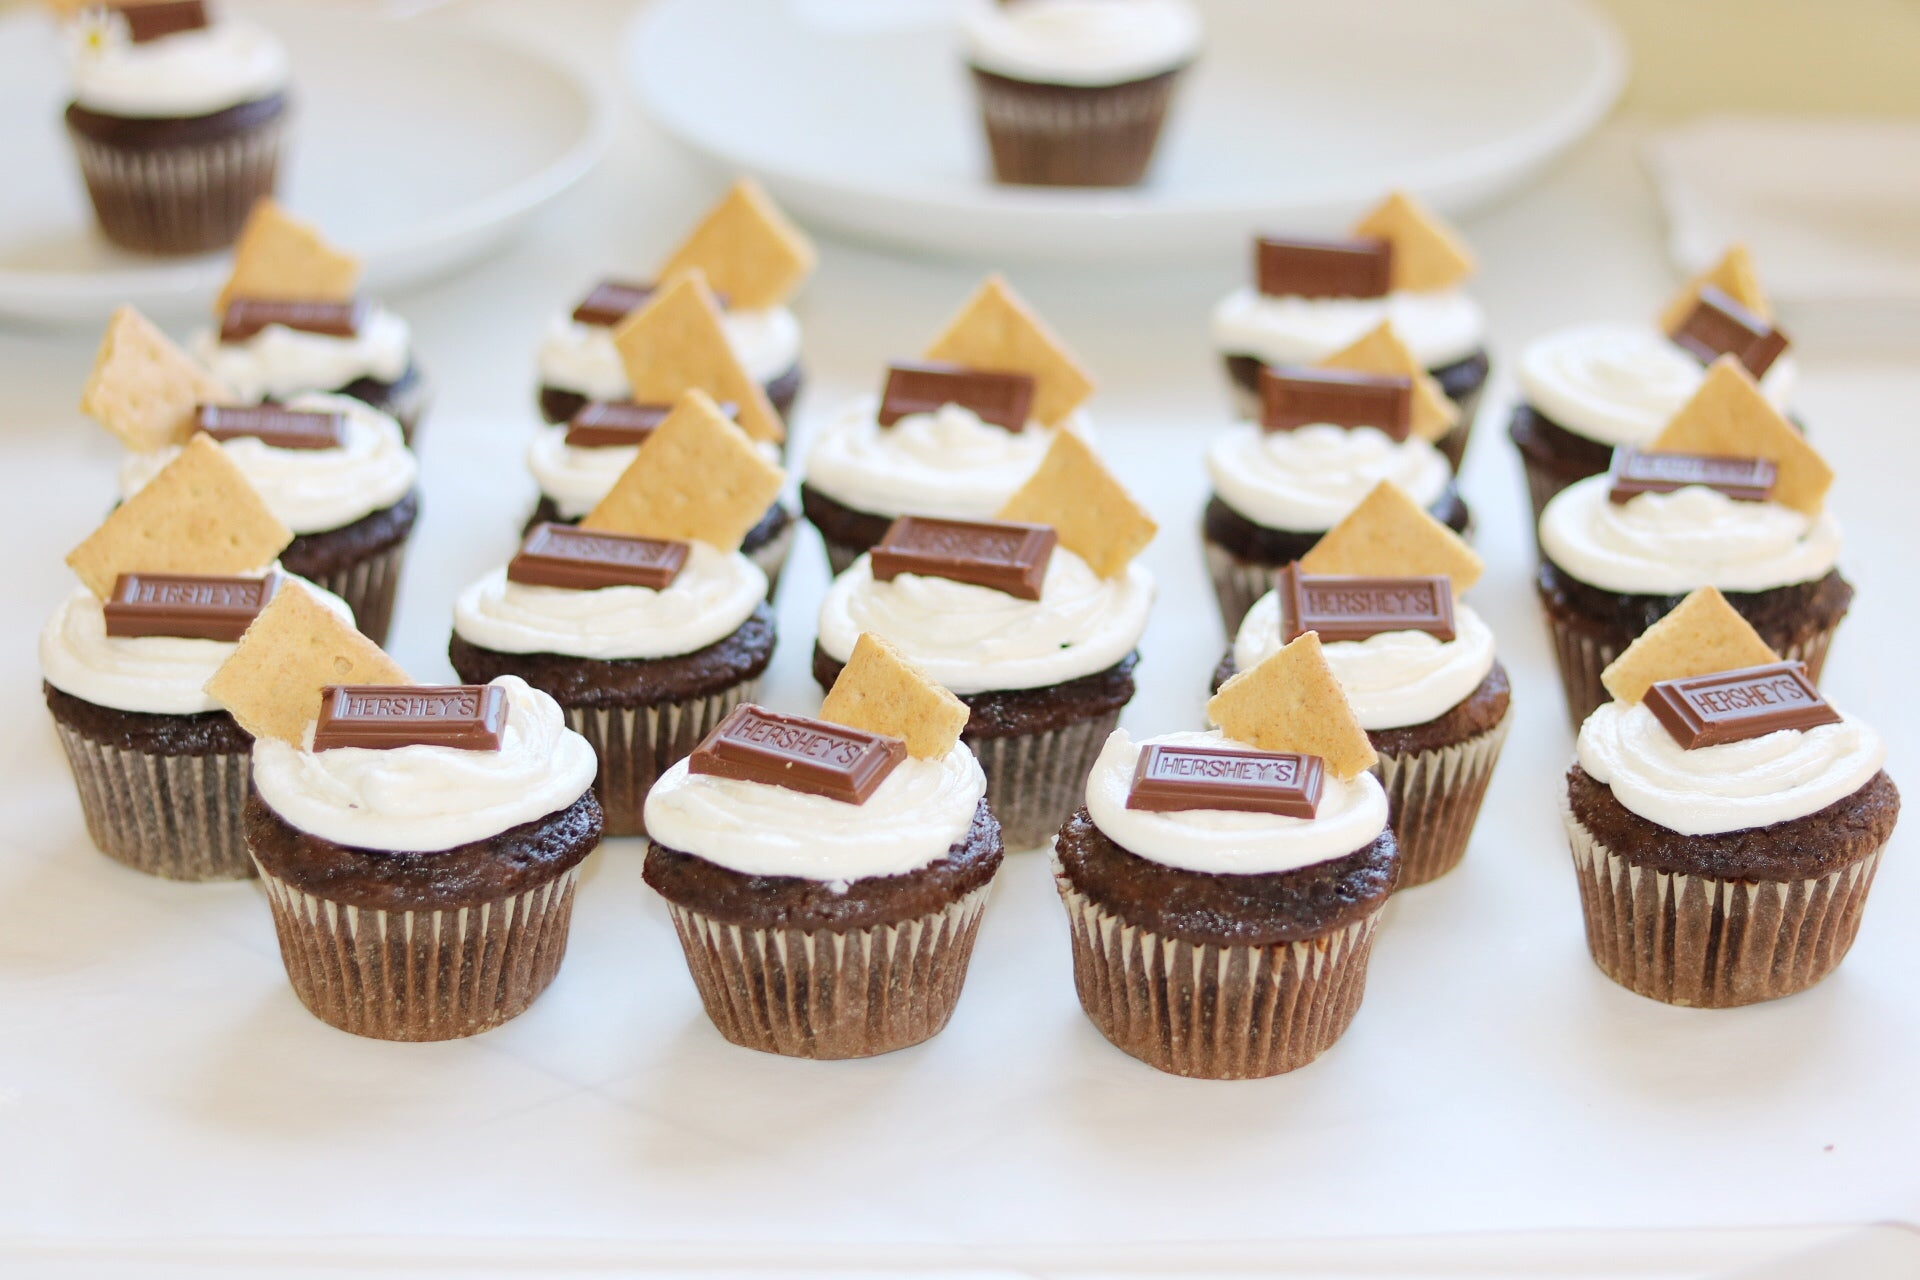 chocolate cupcakes with marshmallow frosting topped with a graham cracker square and hershey's chocolate